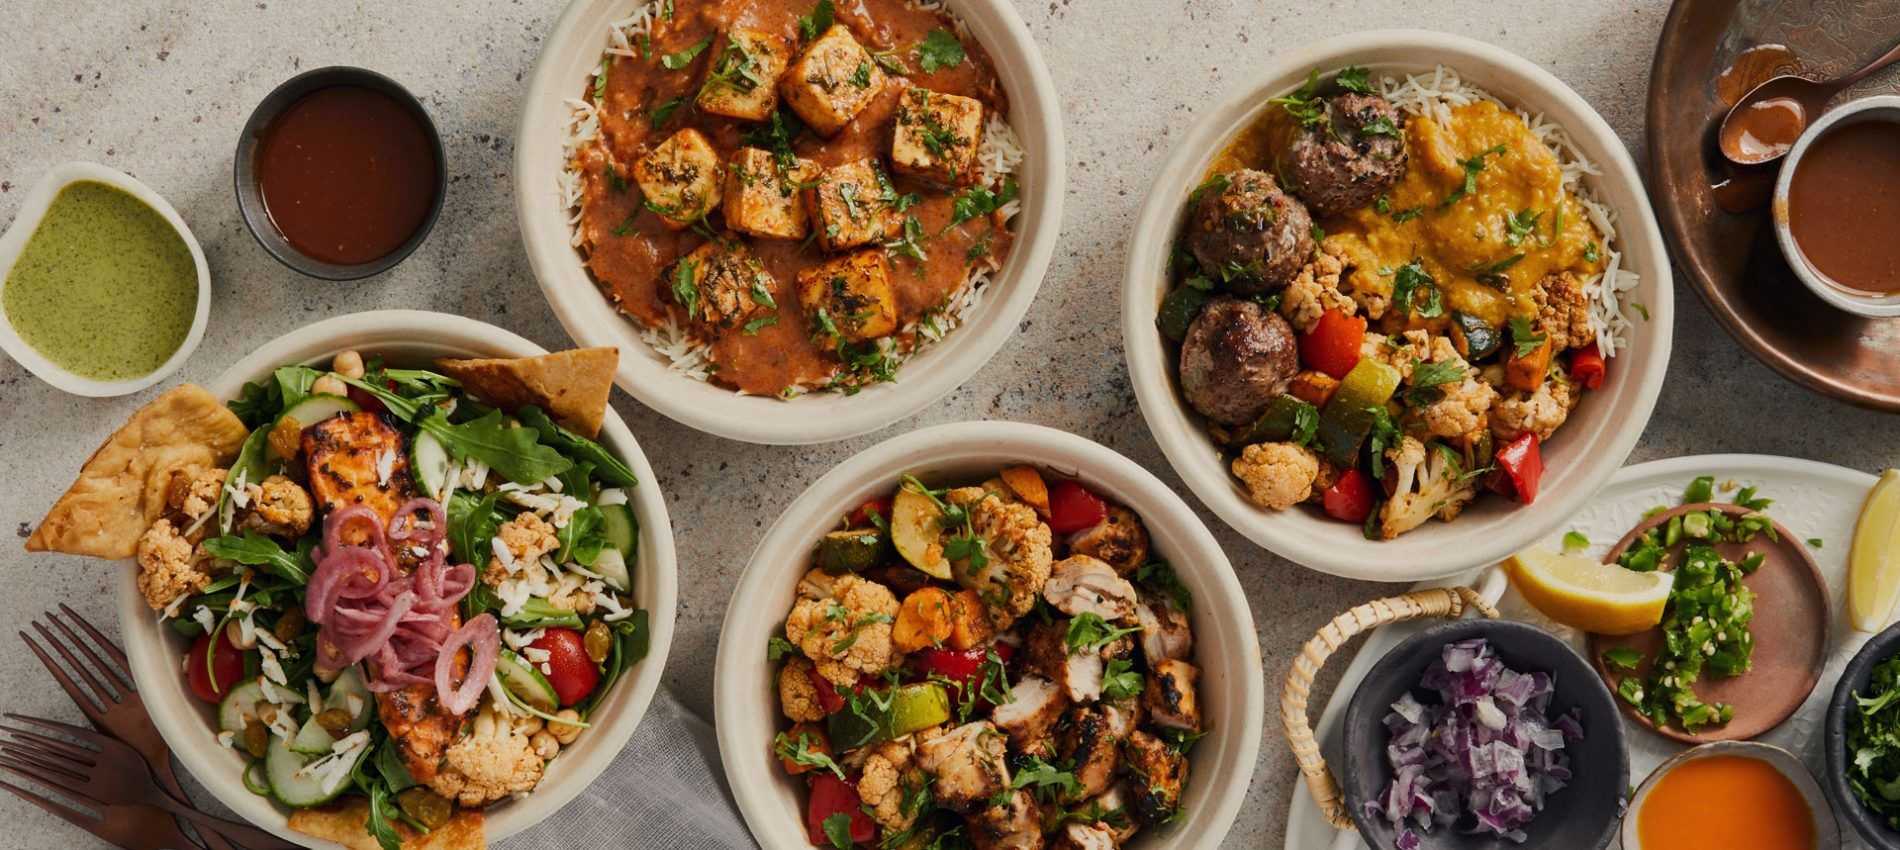 salmon choolaah salad, lamb perfect balance bowl, chicken pro bowl and the paneer choolaah bowl